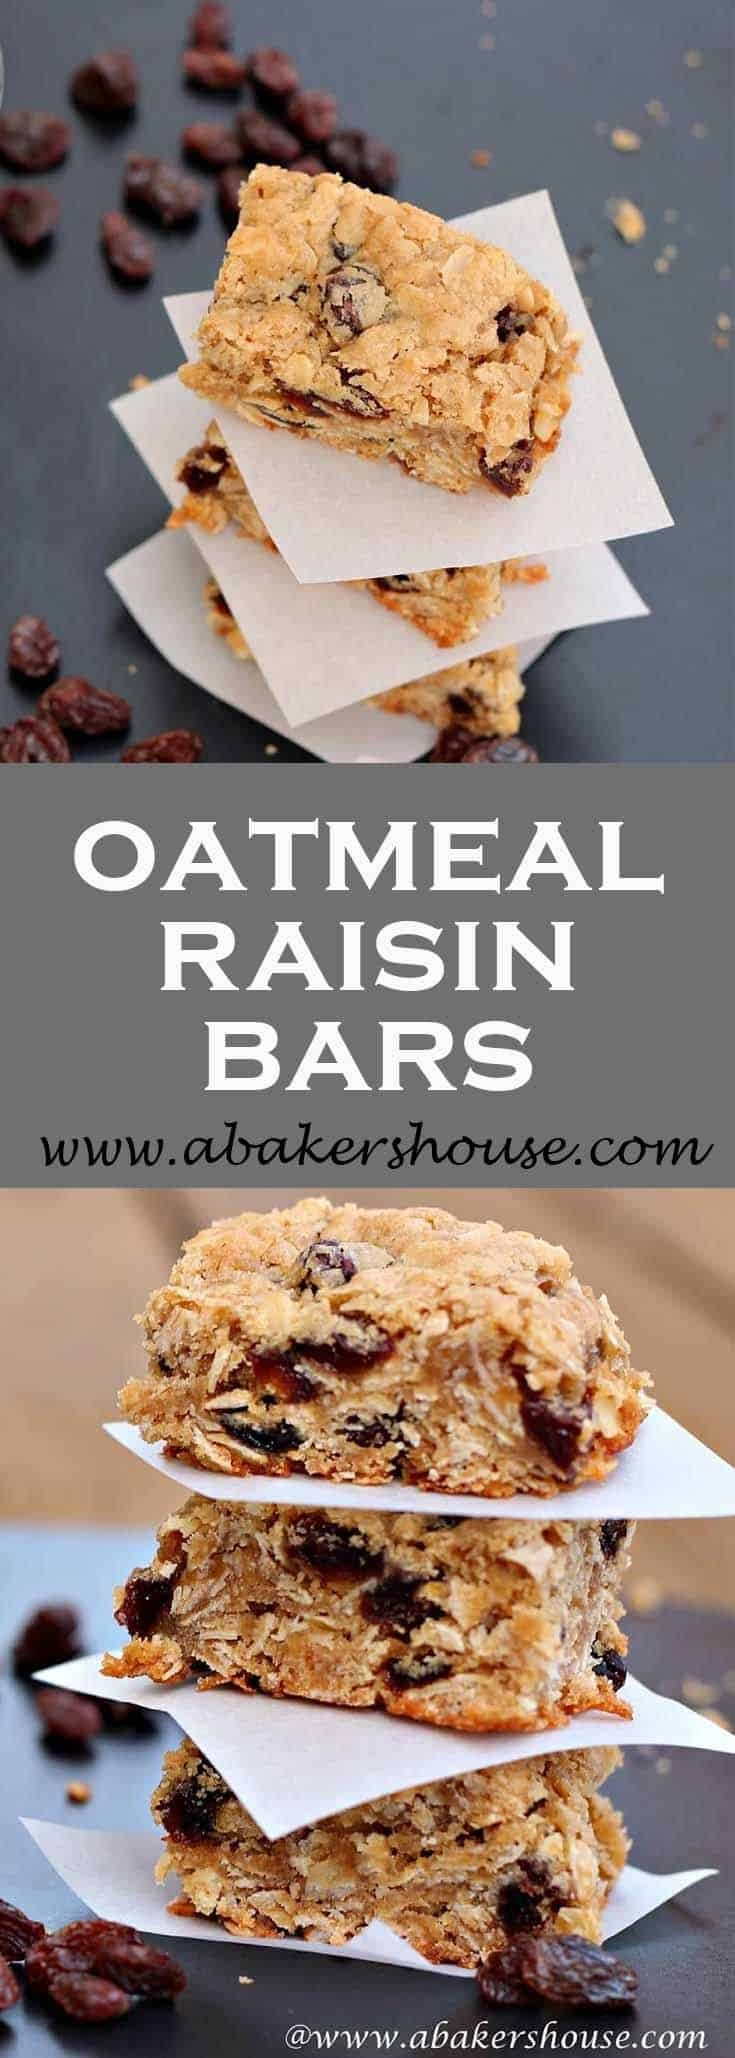 Oatmeal raisin bars are a chewy treat that is perfect for lunch boxes and packs easy for travel, hiking, and picnics. #oatmeal #raisin #dessertbars #dessertsquares #marthastewartrecipe #abakershouse